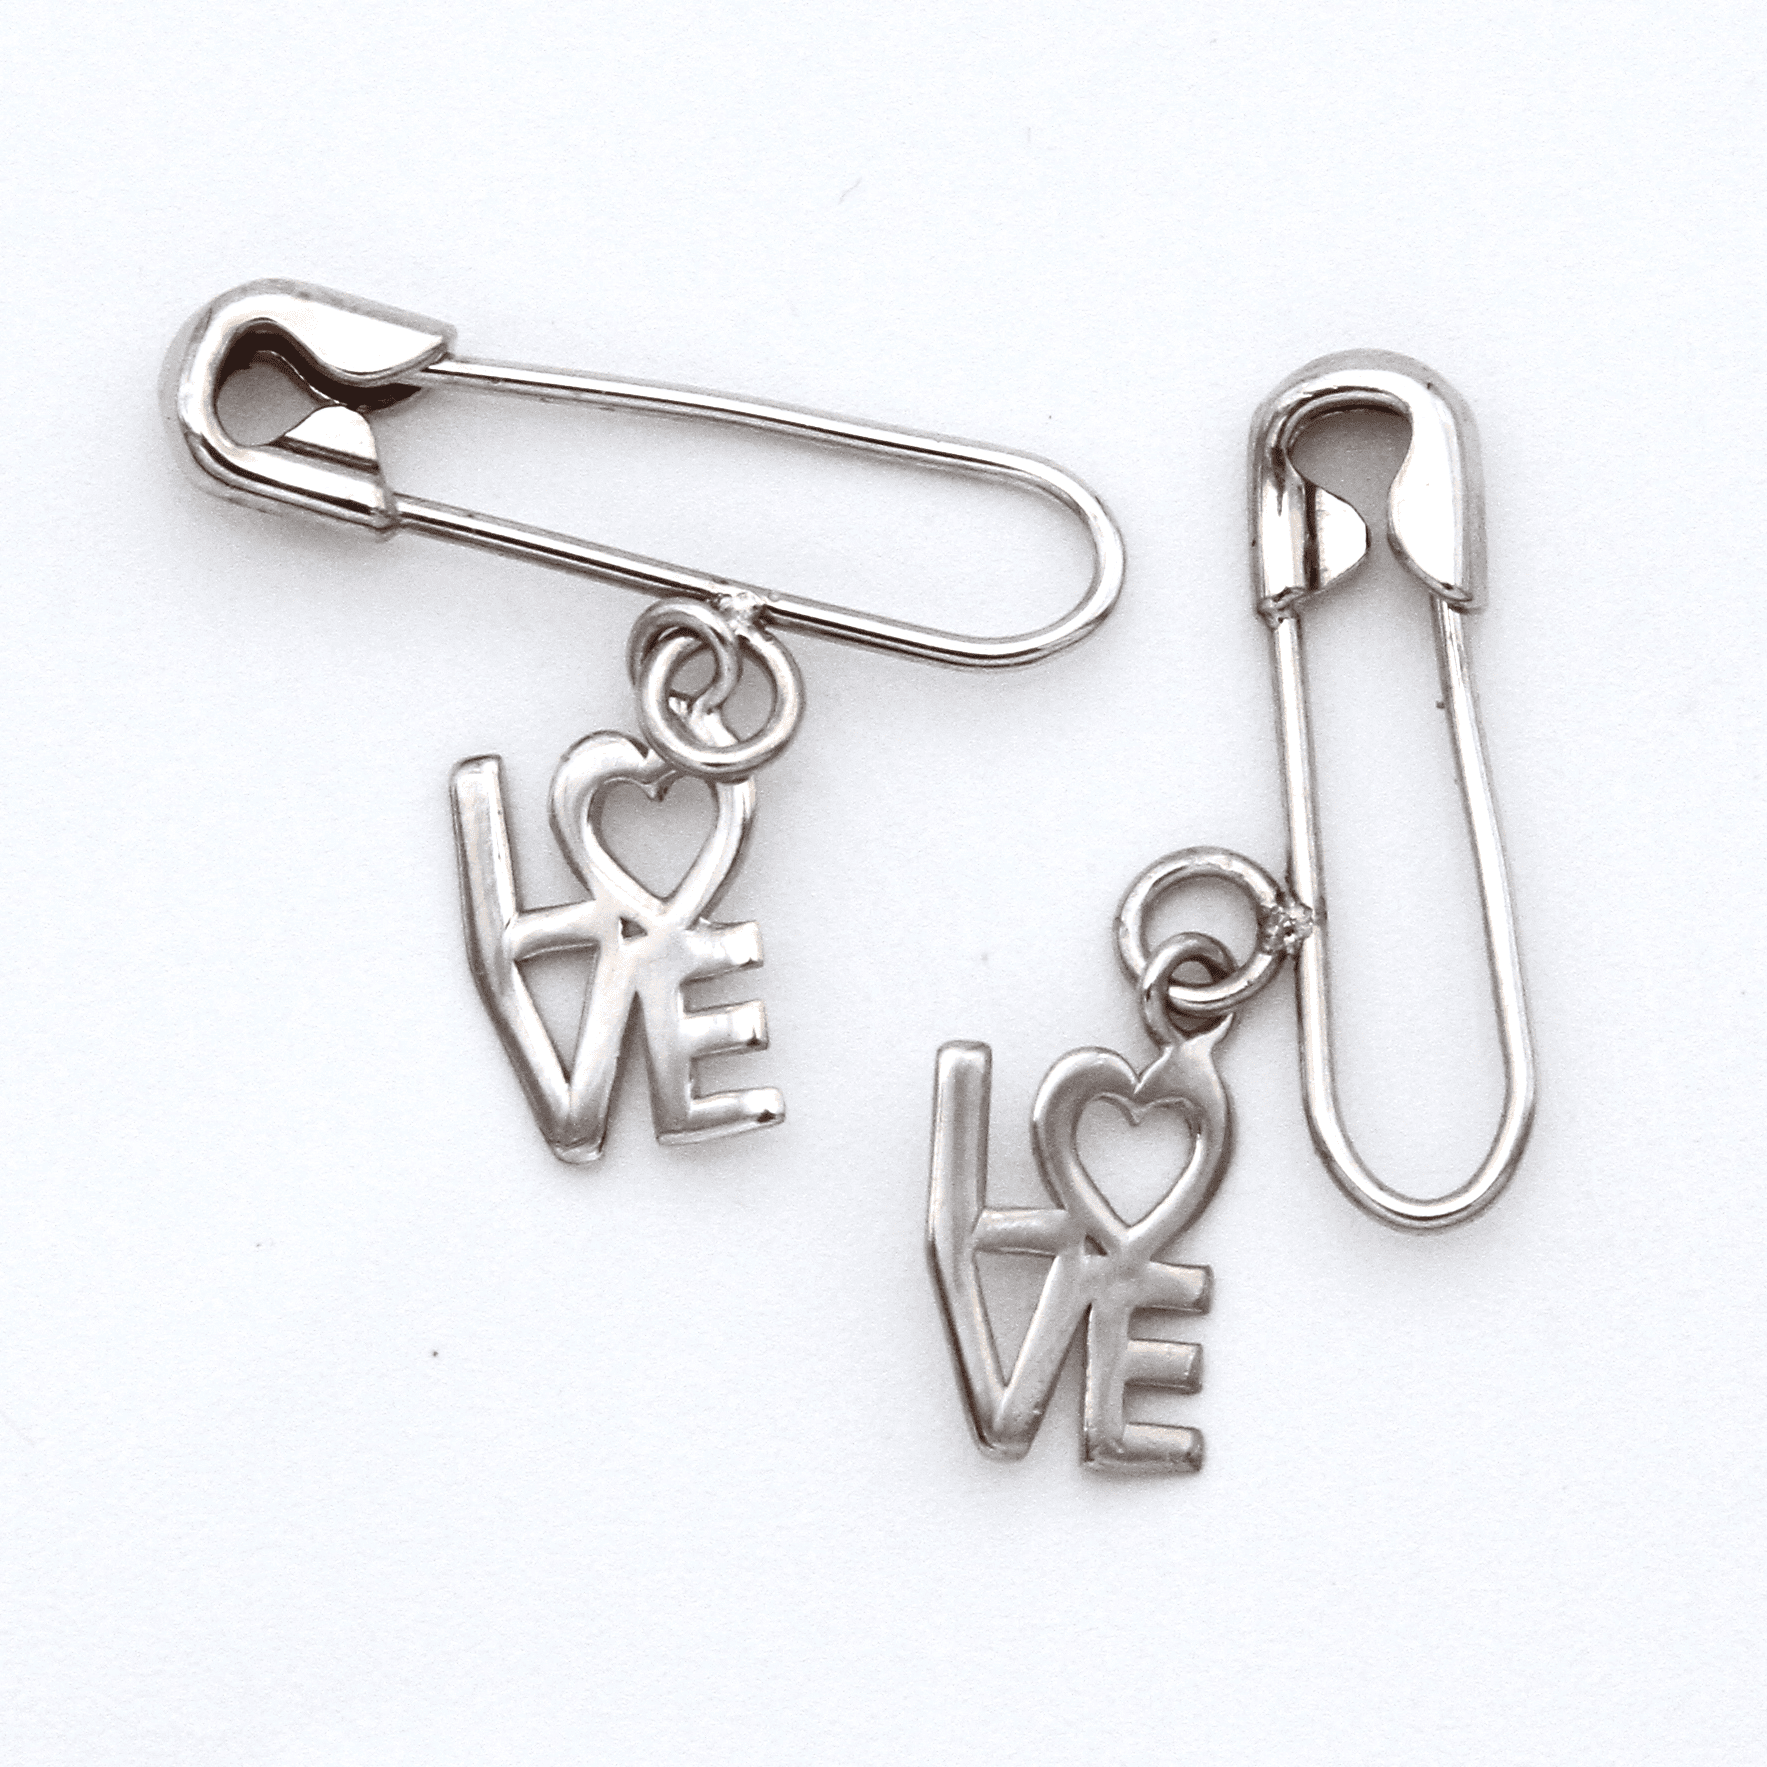 Safety Pin Earrings - Silver 925 with LOVE Charm